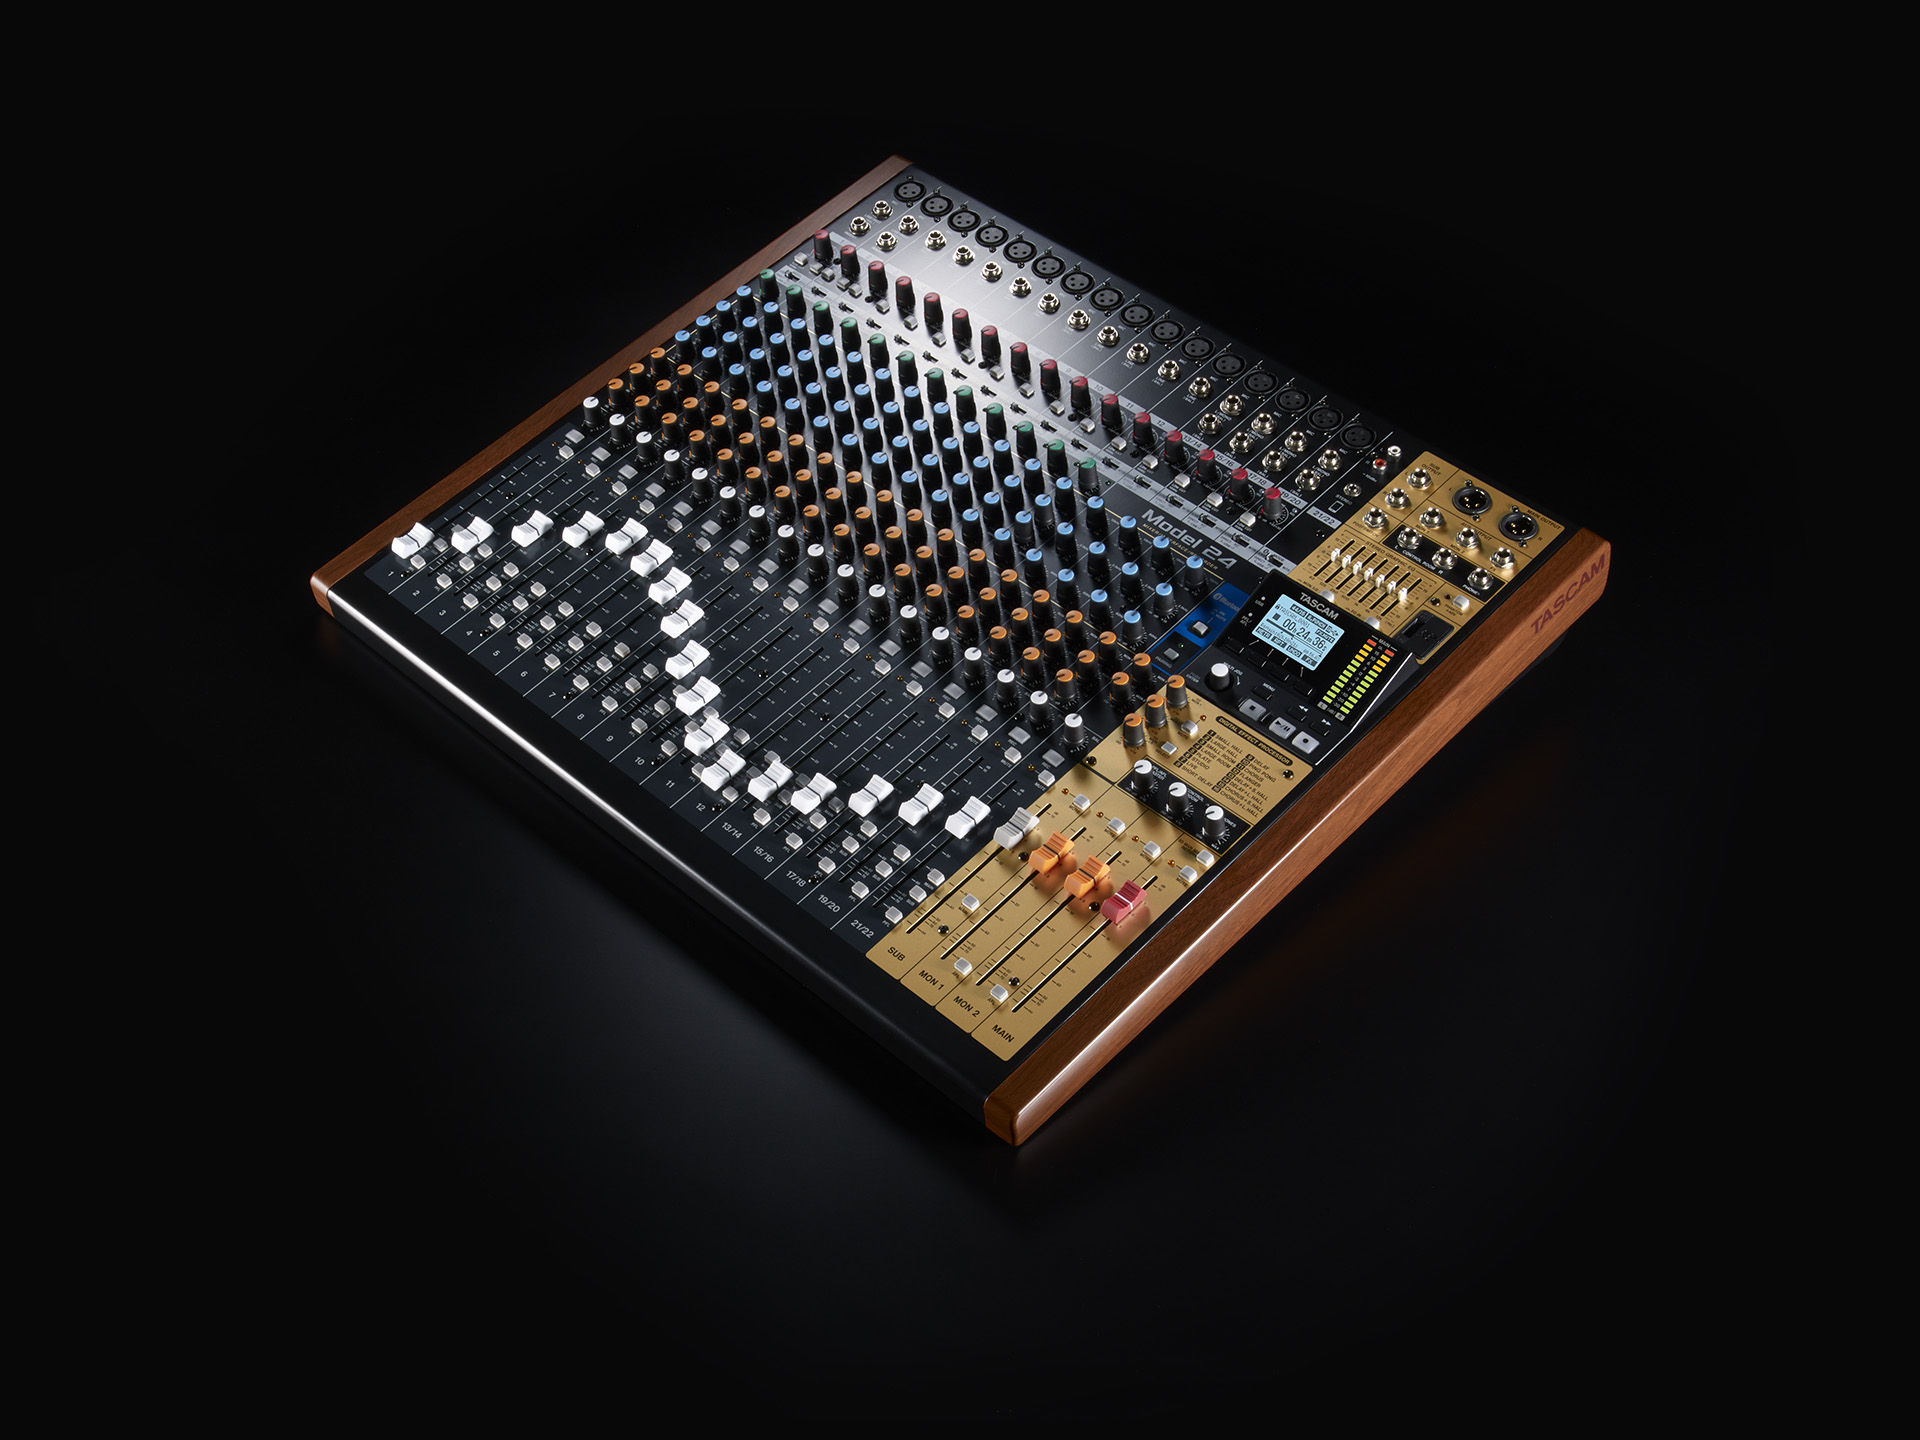 Model 24 Features Tascam Integrated Electronics Analog And Digital Circuits Systems By